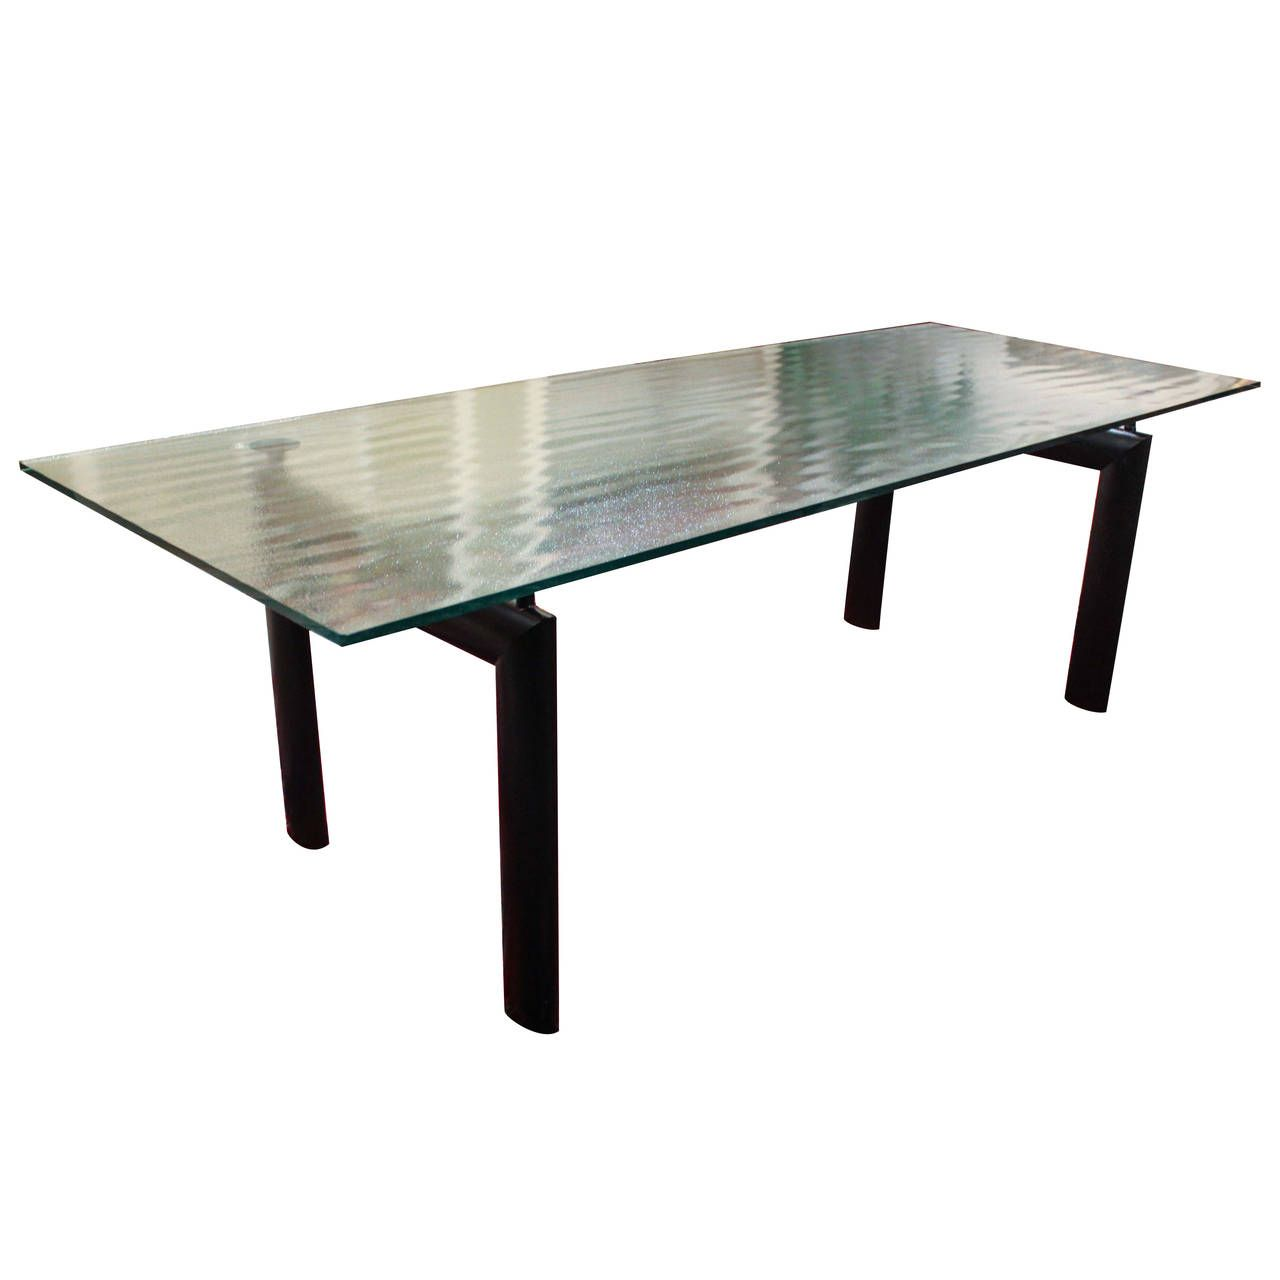 Le Corbusier frosted glass dining table https://www.google.nl/search?q =le+corbusier+table+lc6&rlz=1CDGOYI_enNL686NL686&hl=en-GB&prmd=isvn&source=lnms&tbm=  ...